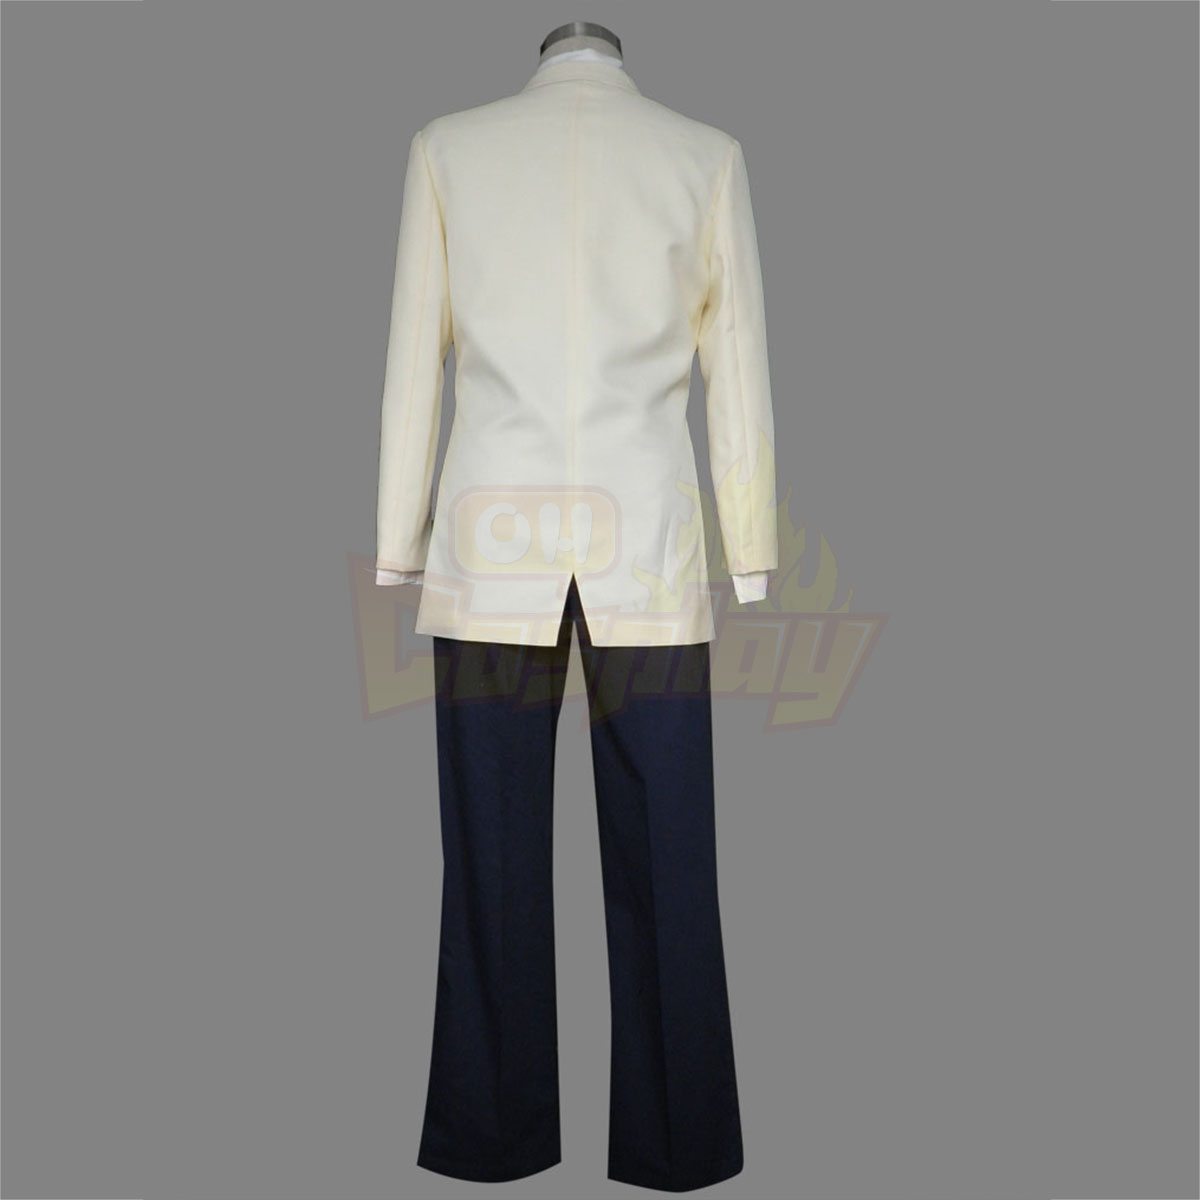 De lujo Disfraces de Clannad Tomoya Okazaki High School Male Uniforme de Invierno Costumes